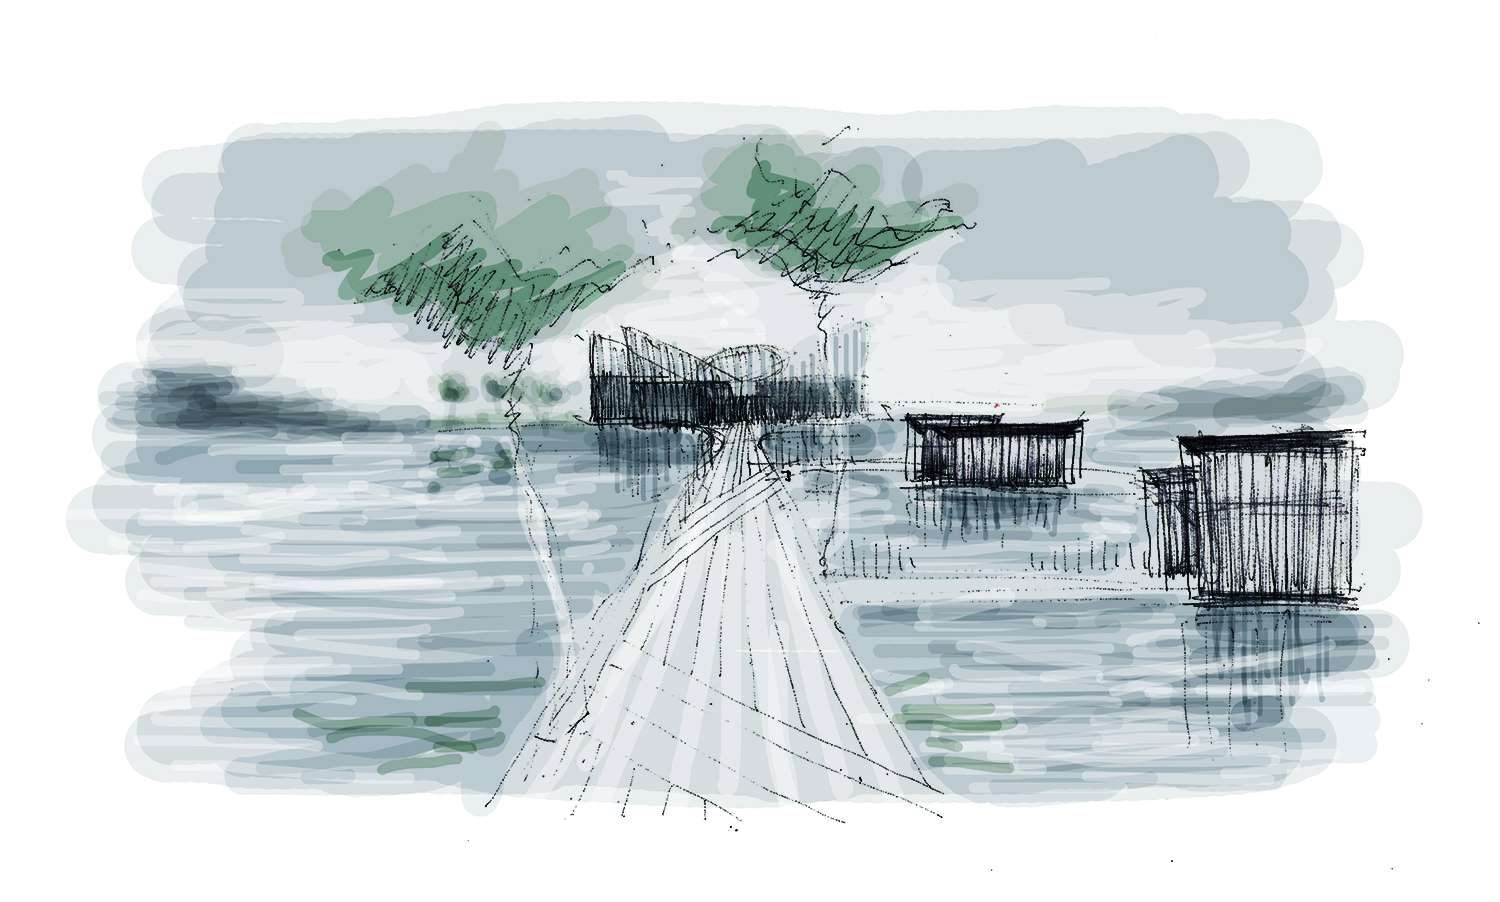 BOIFFILS-Dian Shan Lake-Sketch-Spa-02.jpg